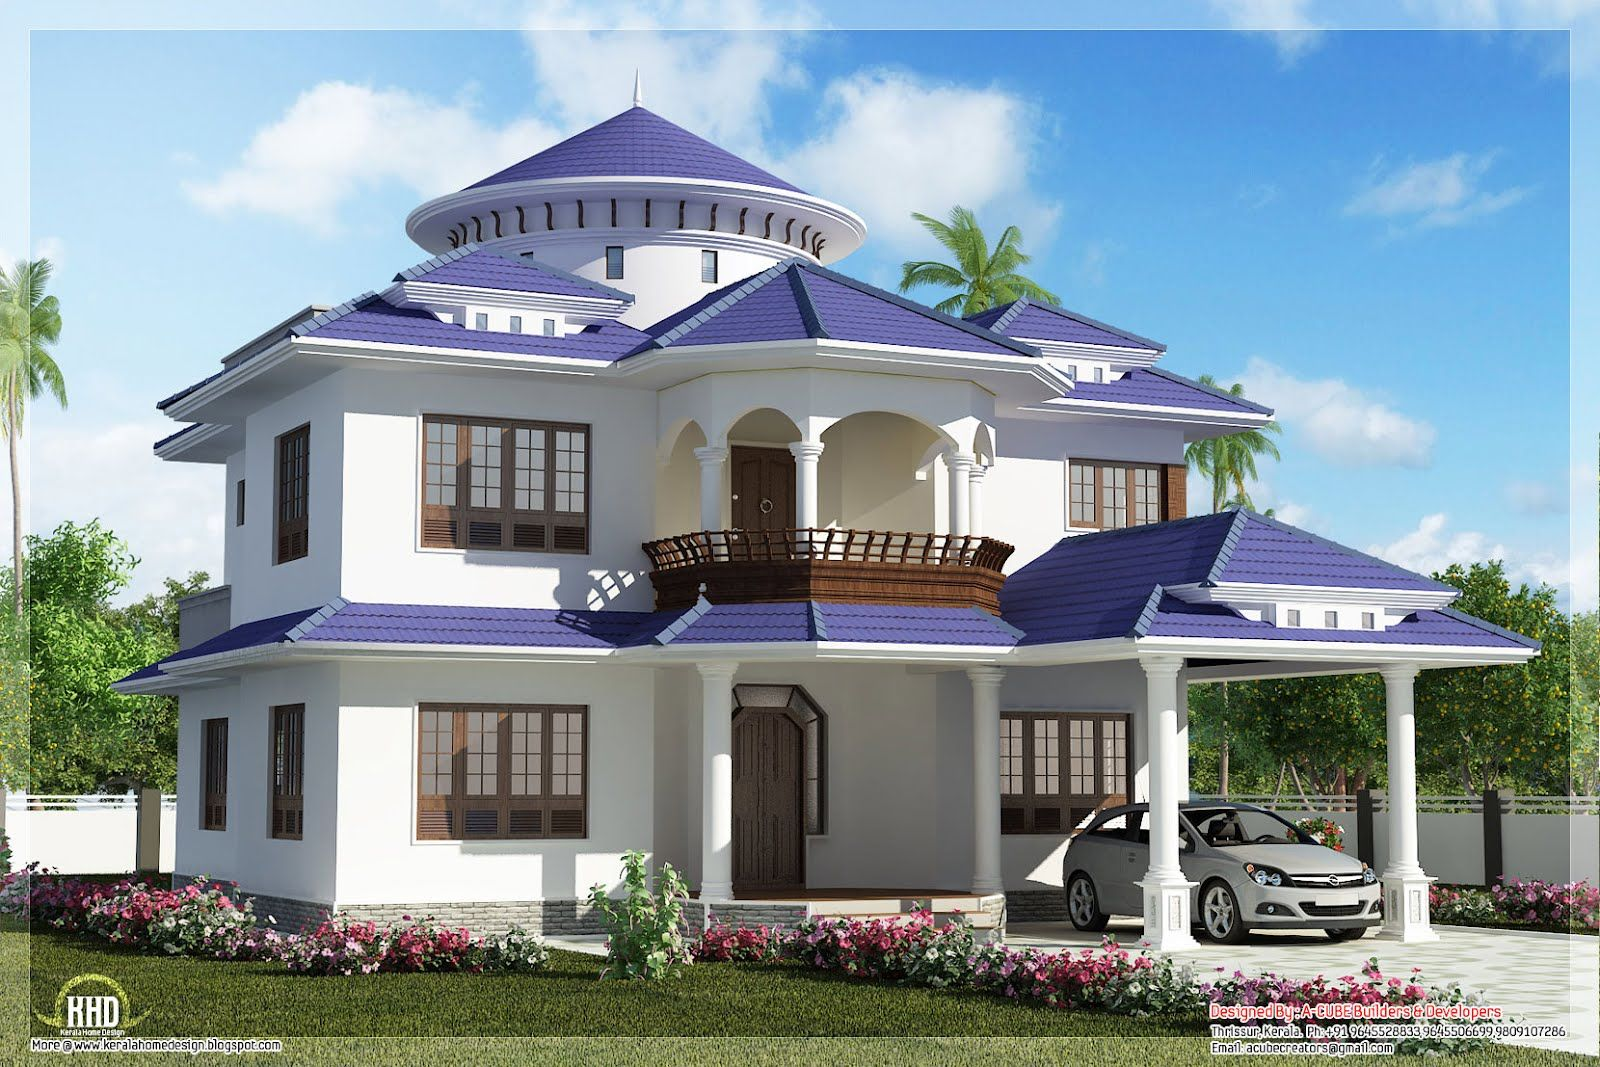 Home Design In India high quality india house design homes design in india Dream Houses Beautiful Dream Home Design In 2800 Sqfeet Indian Home Decor